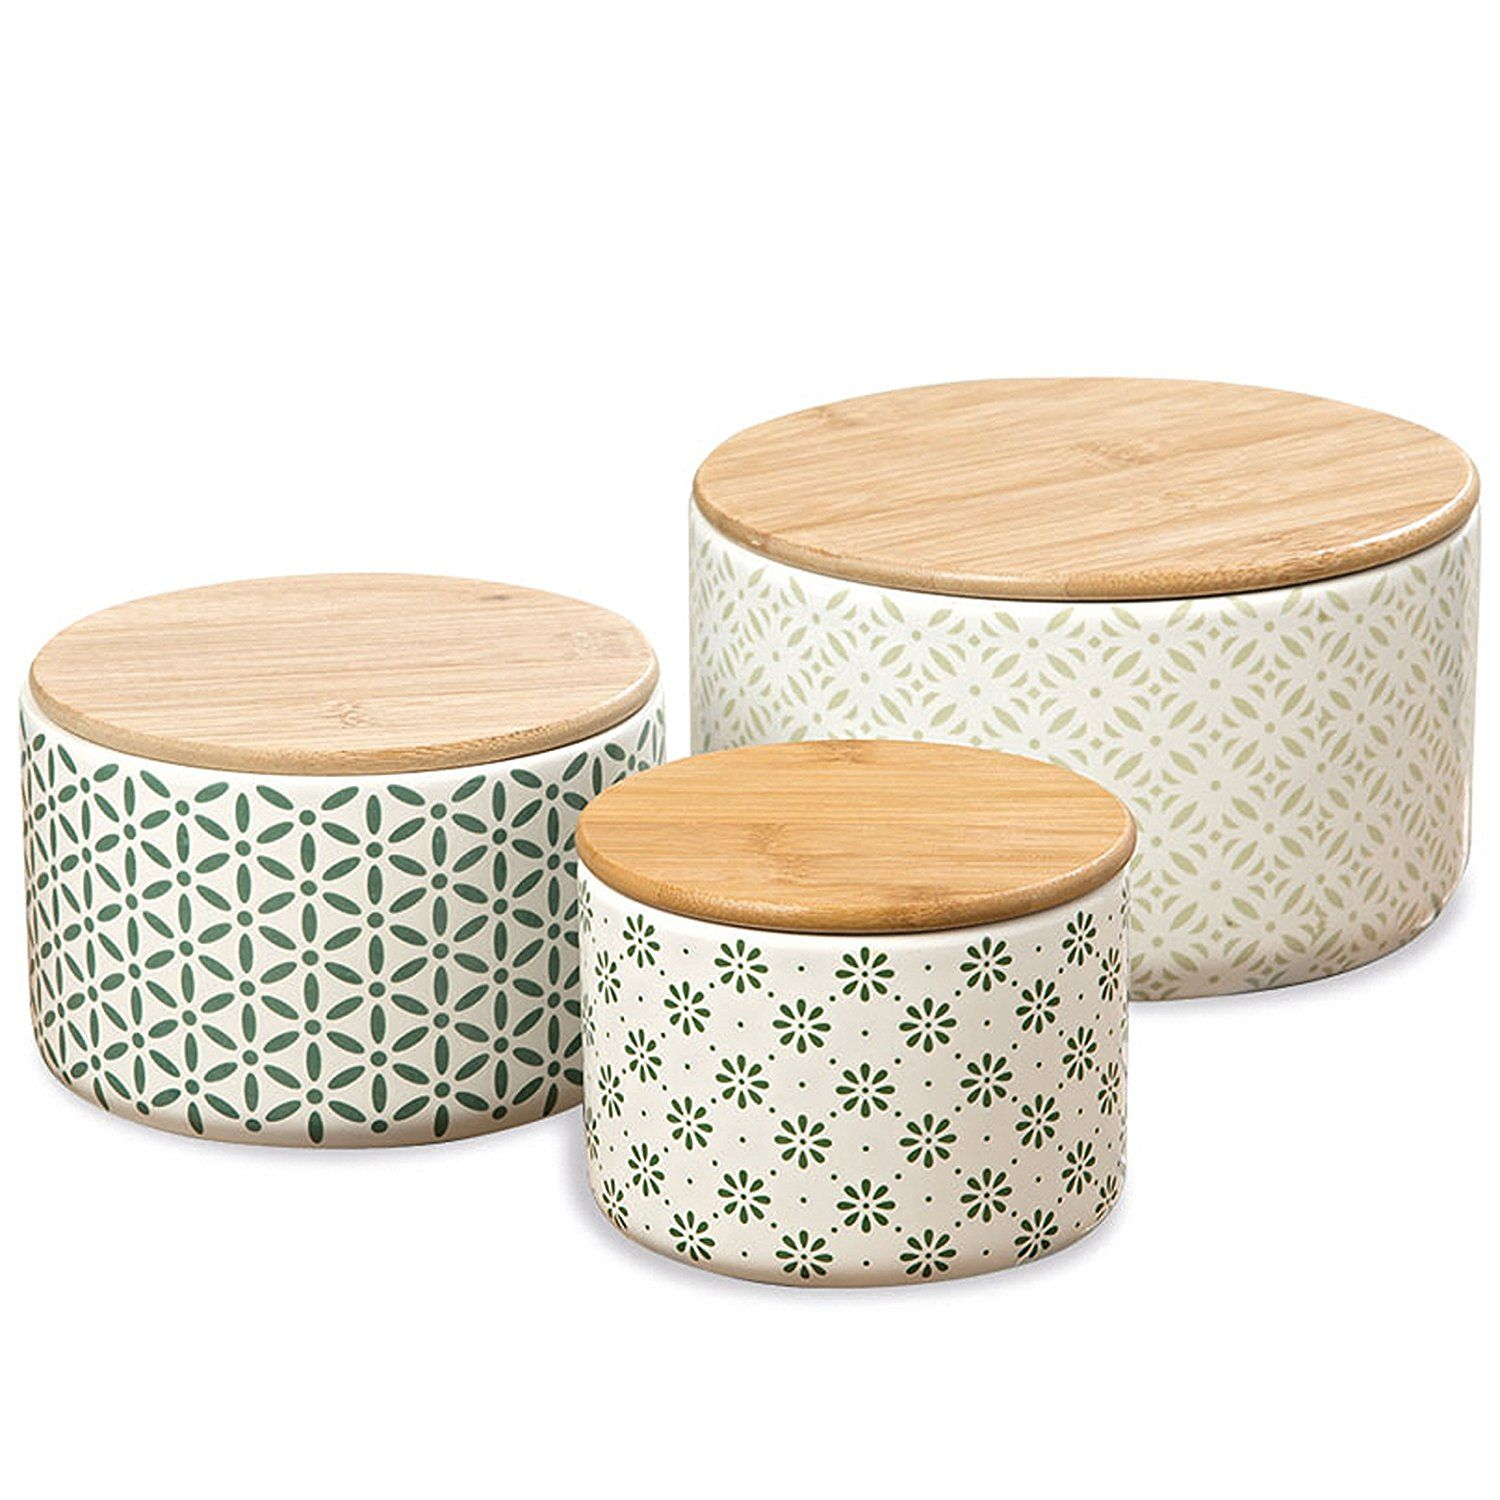 Find Them Here The Gastro Chic Ikat Kitchen Jars, Set Of 3, For Cookies,  Dry Goods